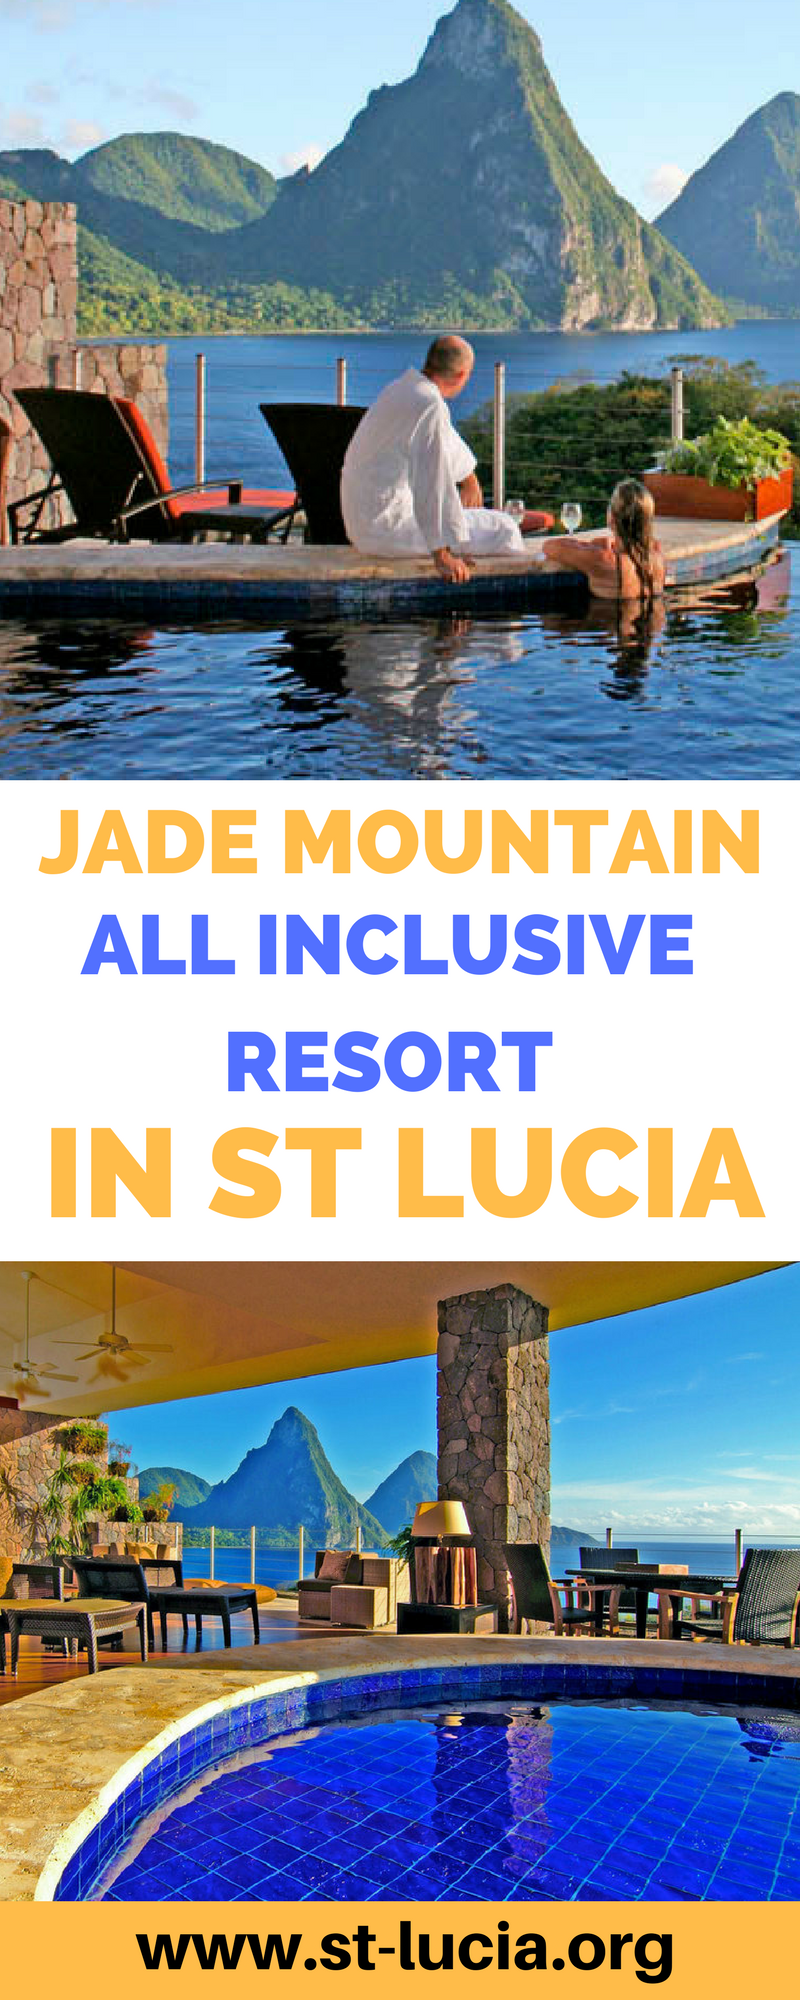 Jade Mountain all inclusive resort in St Lucia. Book your next vacation at the Jade Mountains.